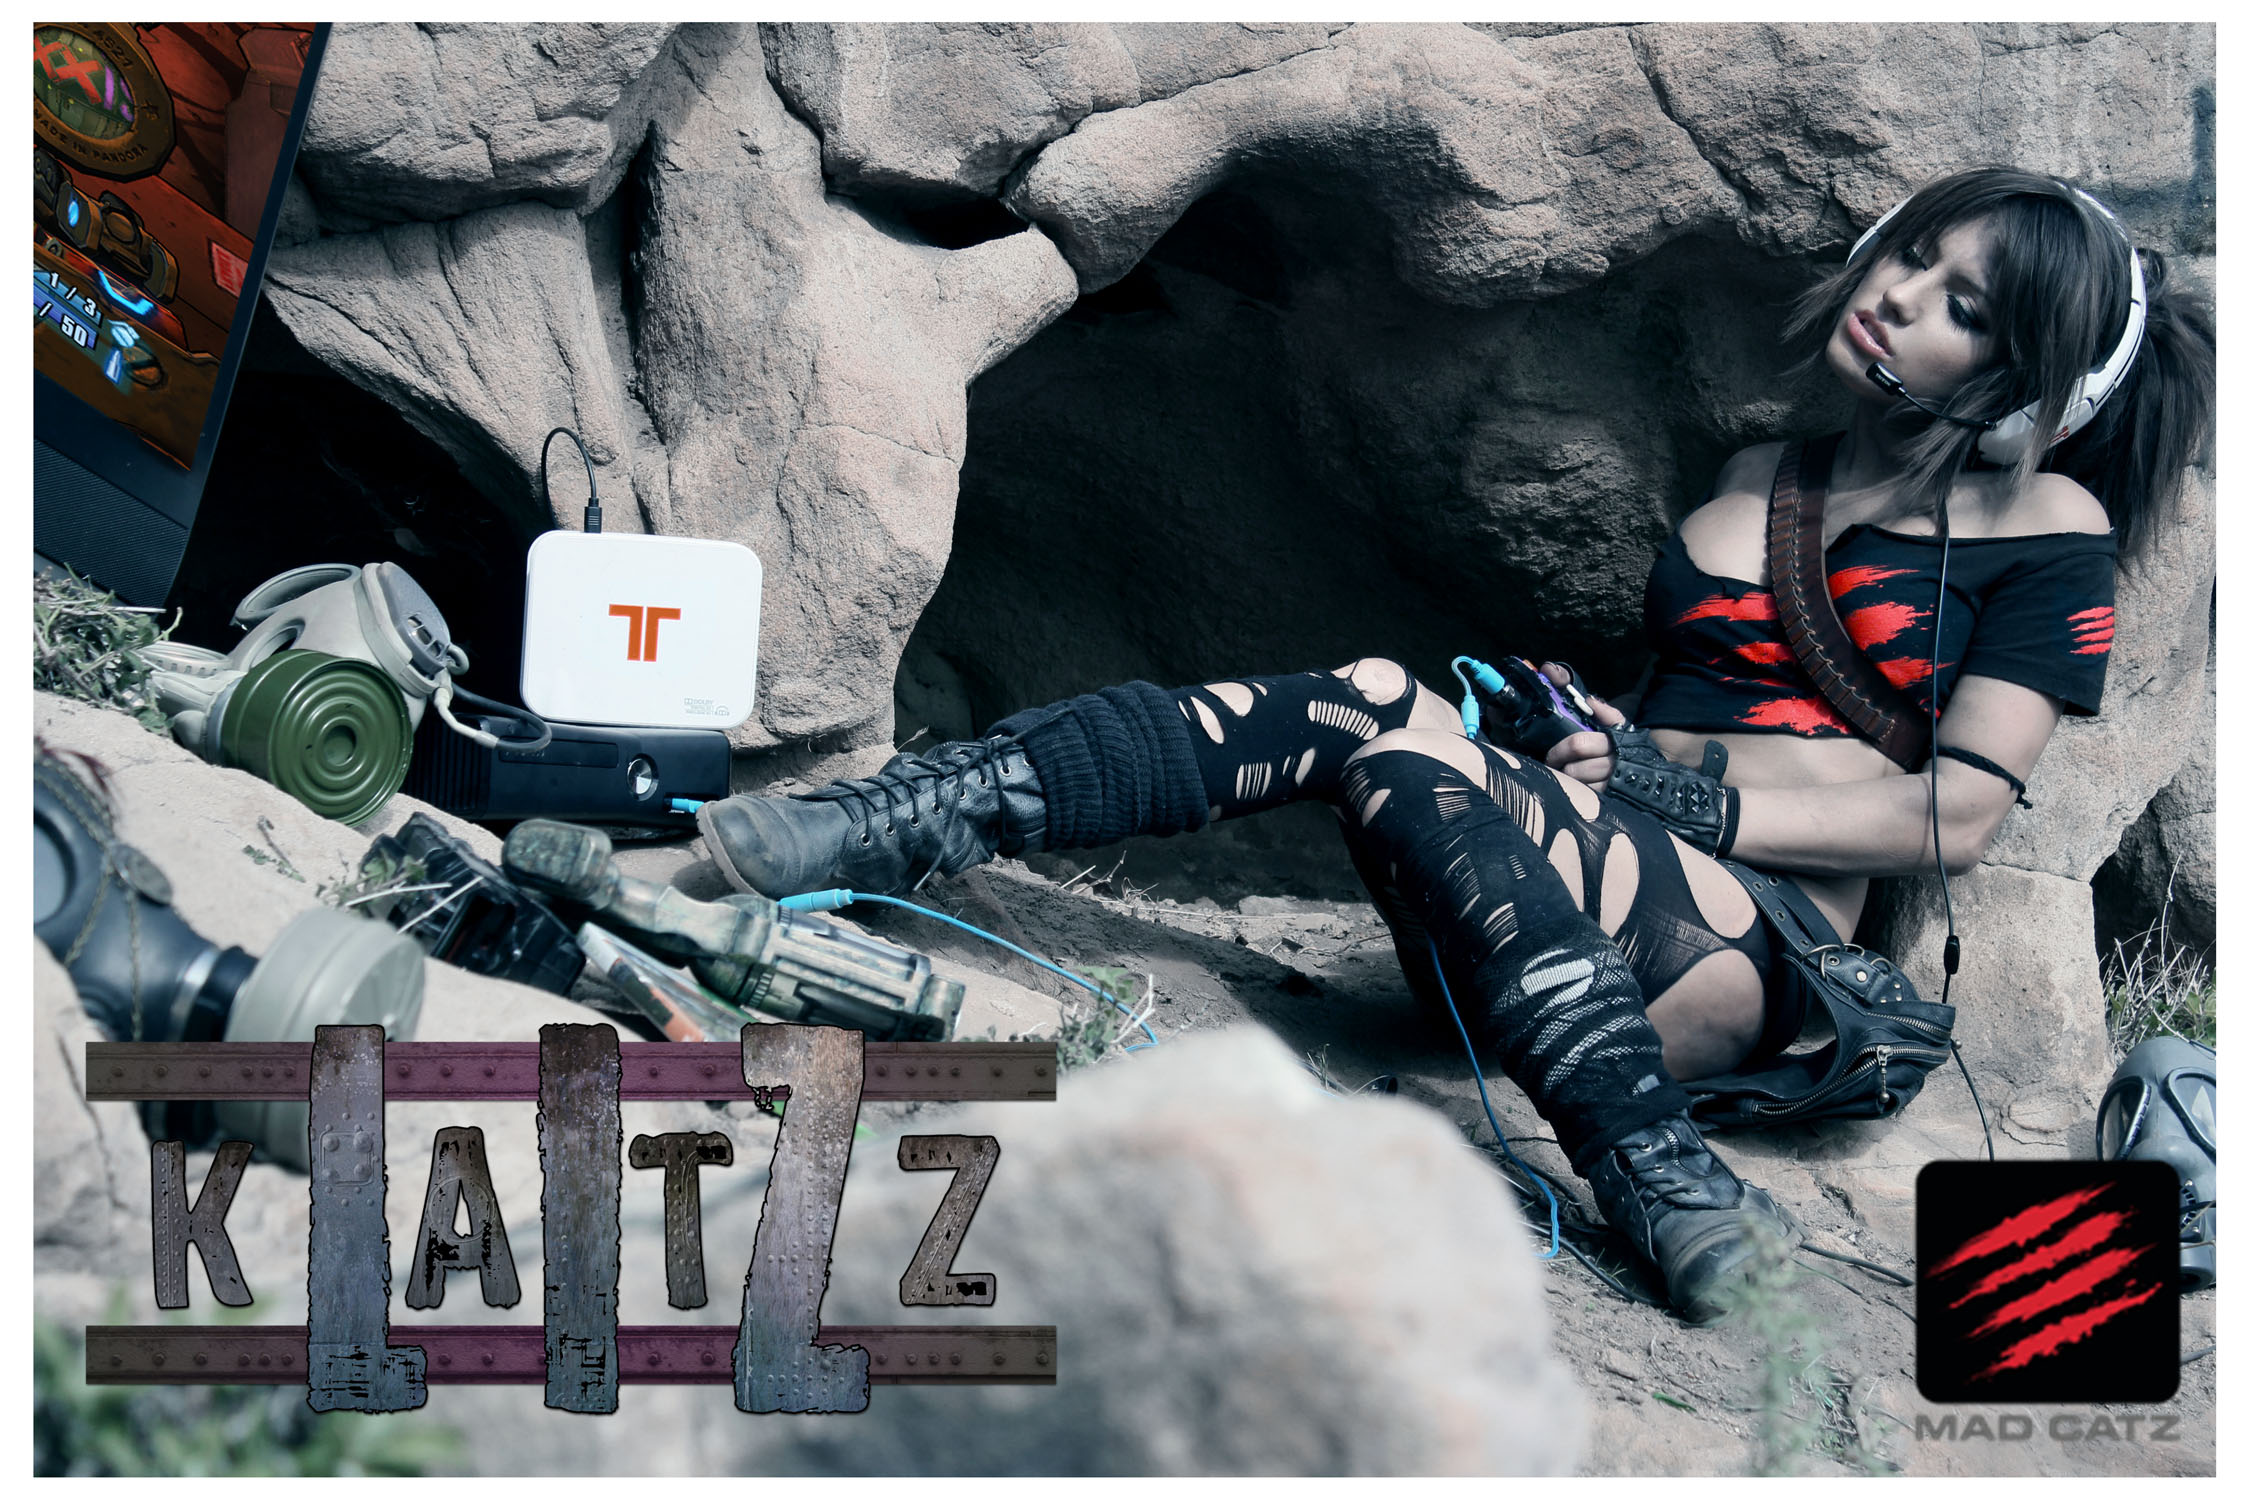 Mad Catz teams up with Liz Katz to play with their Tritton headset